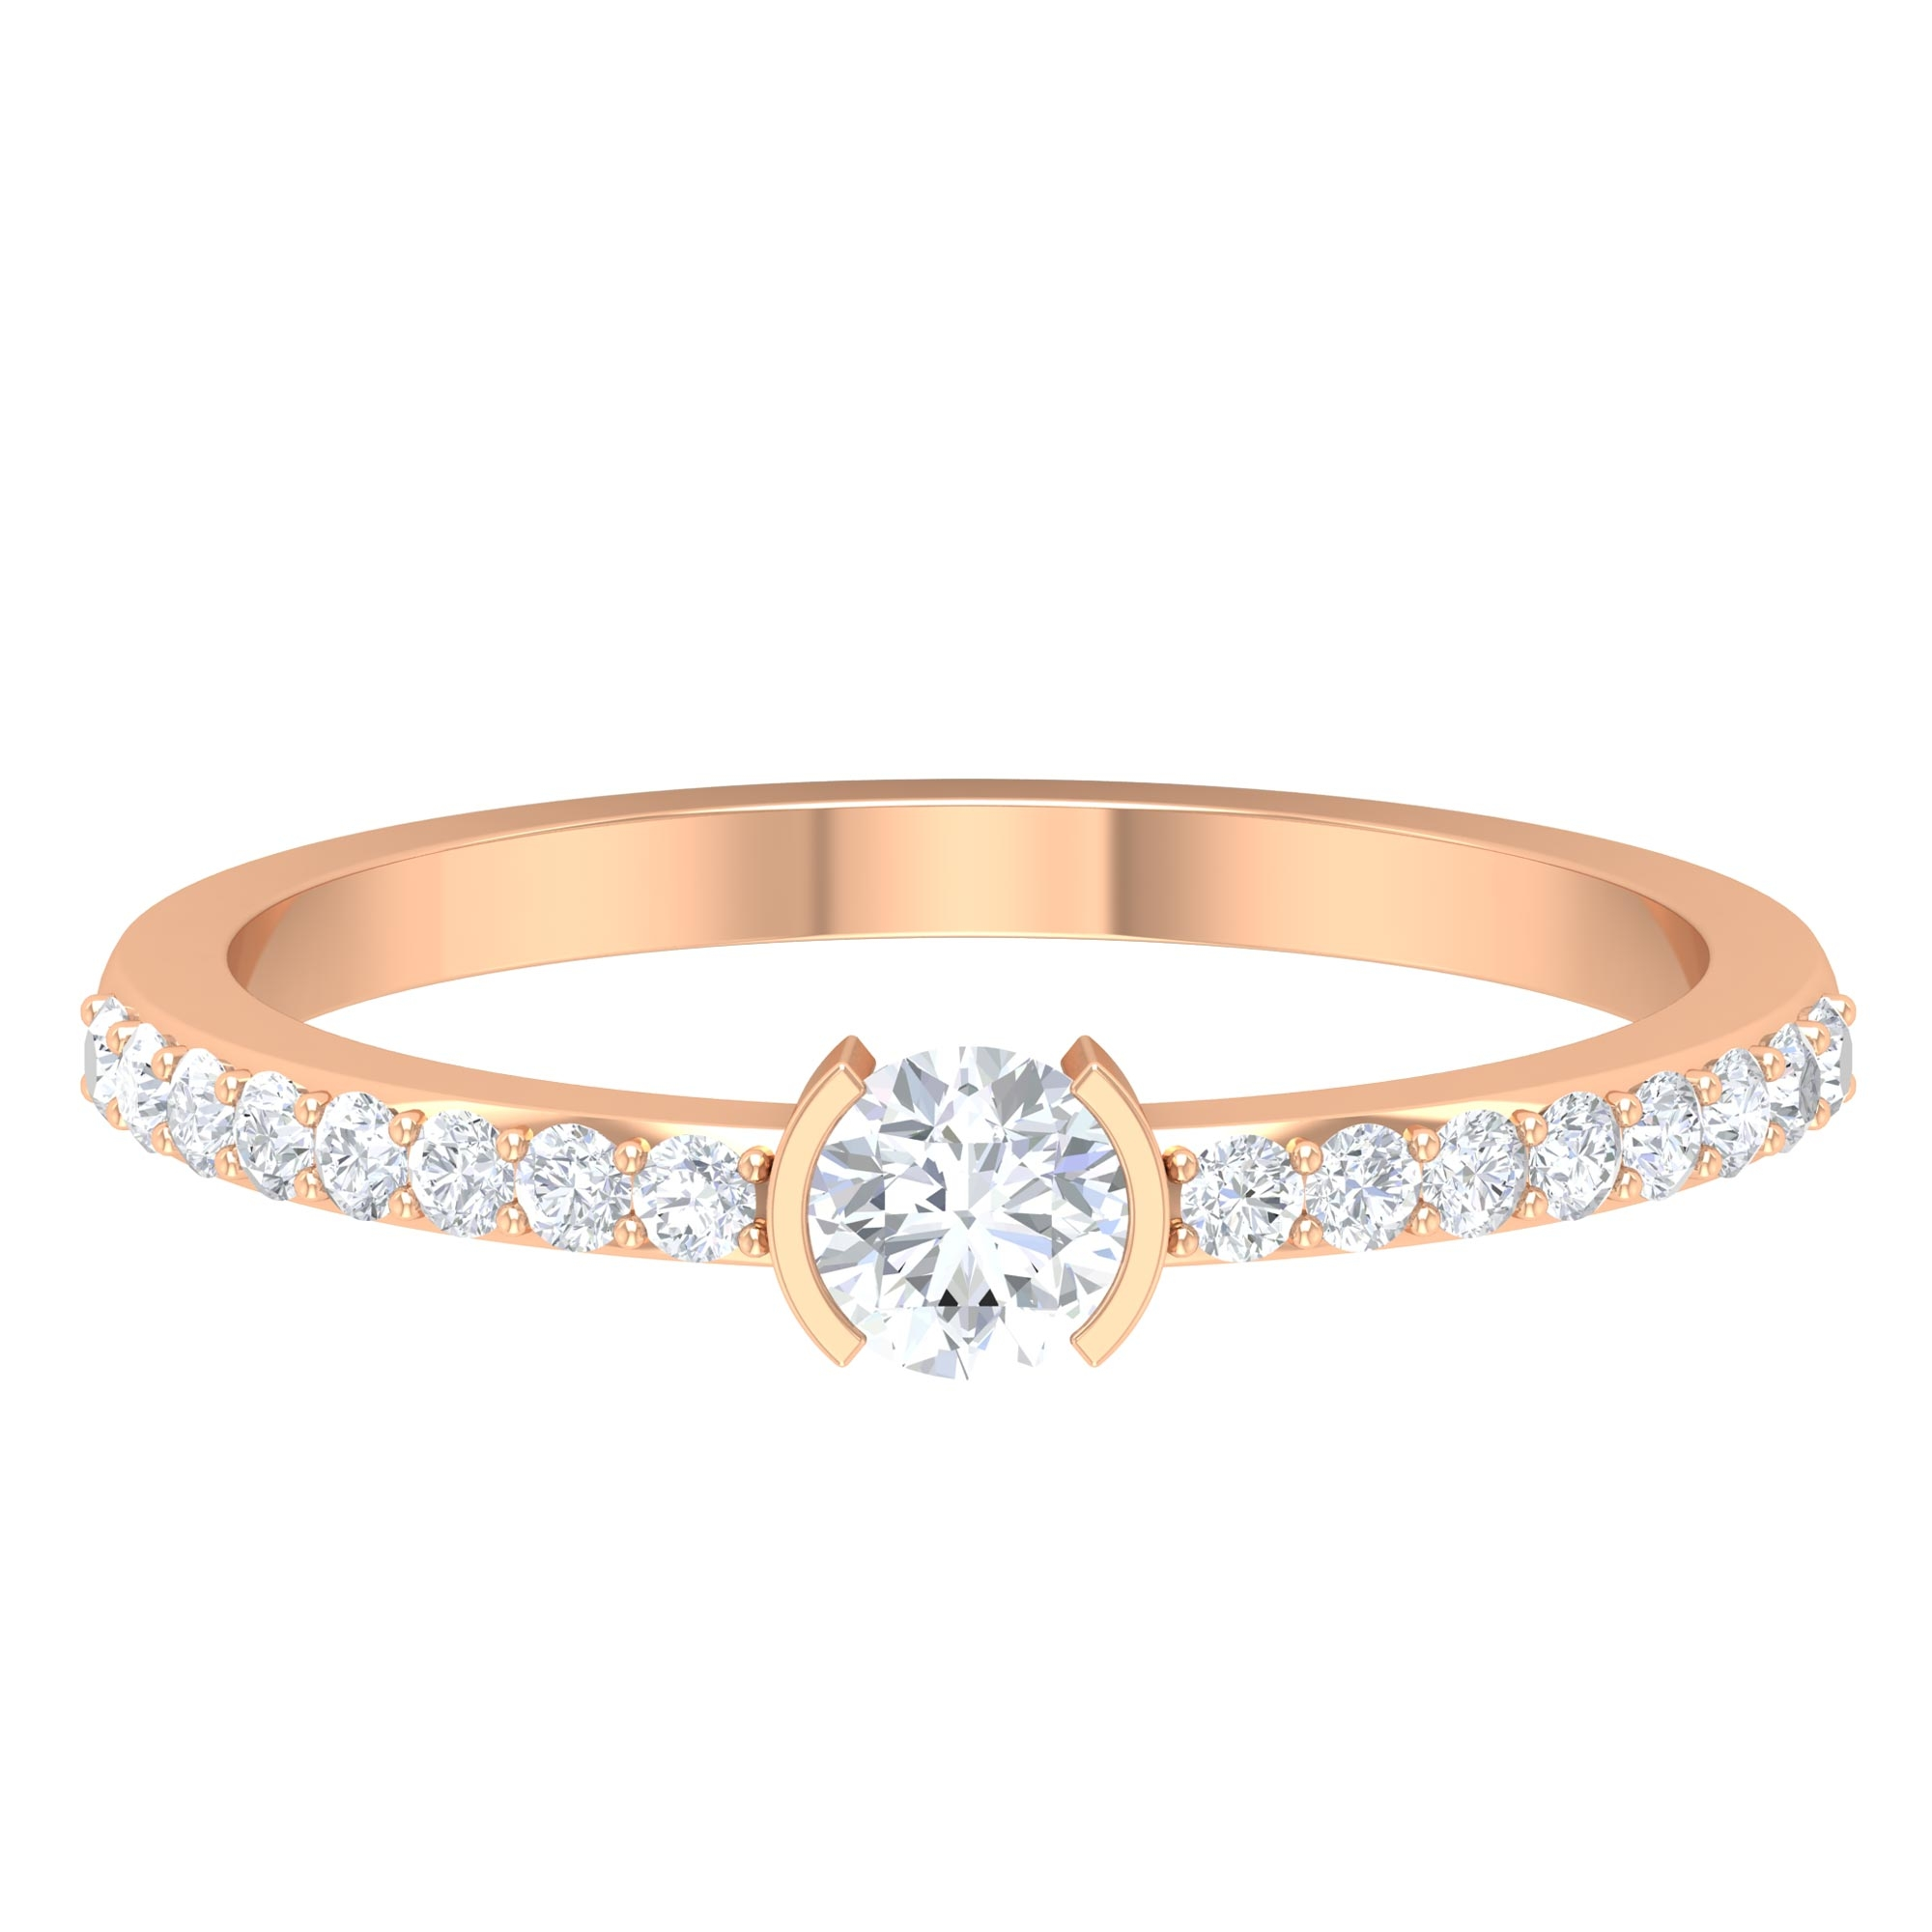 1/2 CT Round Cut Diamond Solitaire Ring in Half Bezel Setting with Surface Side Stones